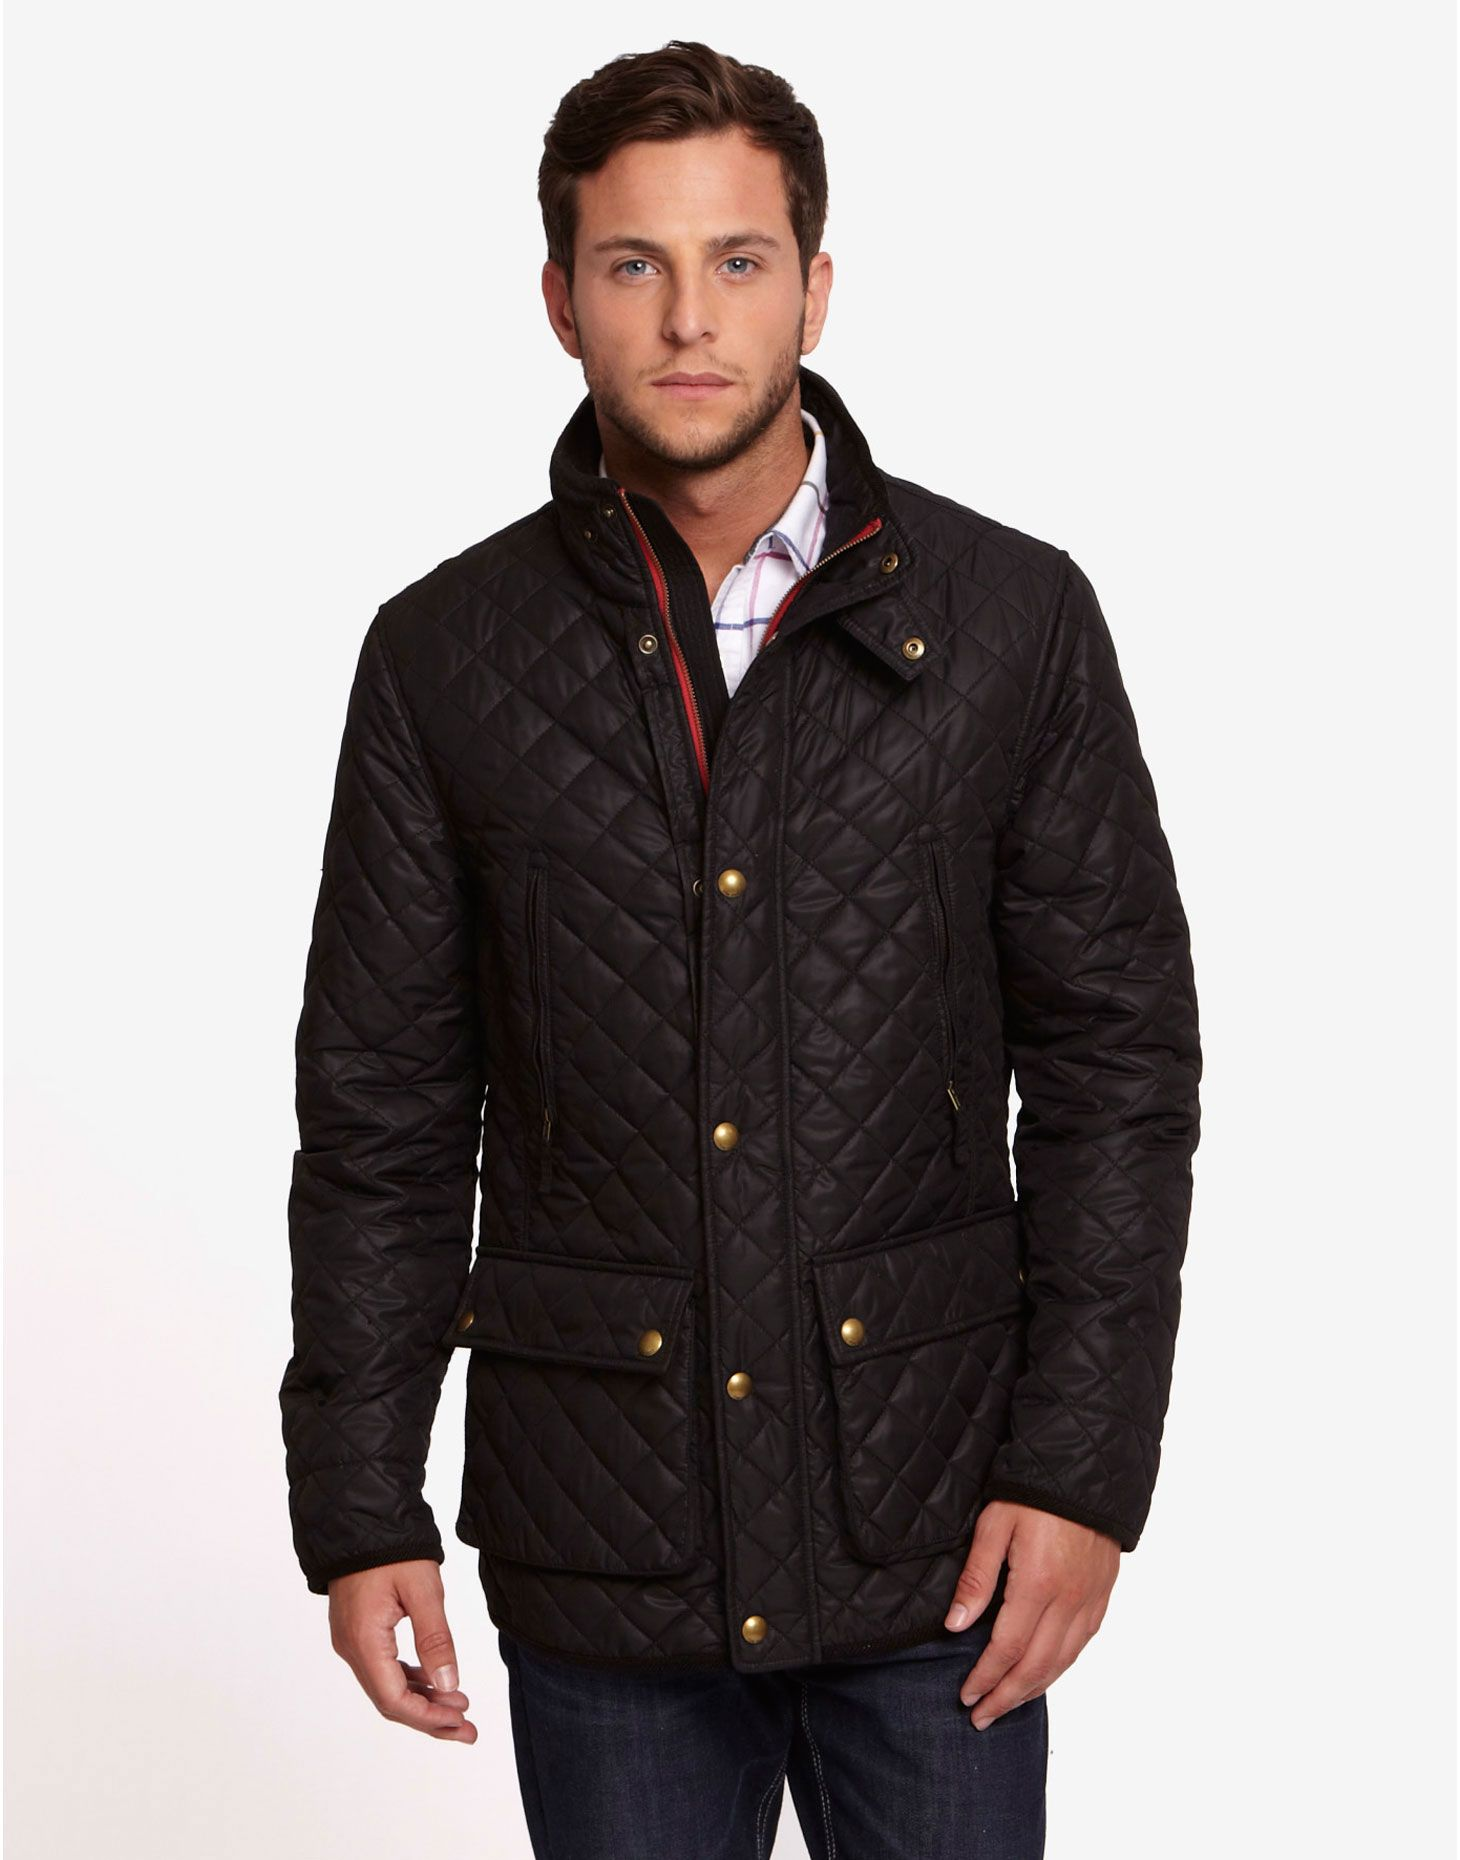 Shop men's coats from Burberry. The range includes both single-breasted and double-breasted designs alongside trench coats, parkas, and more. Lambskin Yoke Diamond Quilted Jacket. $1, Click the star icon to add this item to your Favourites.